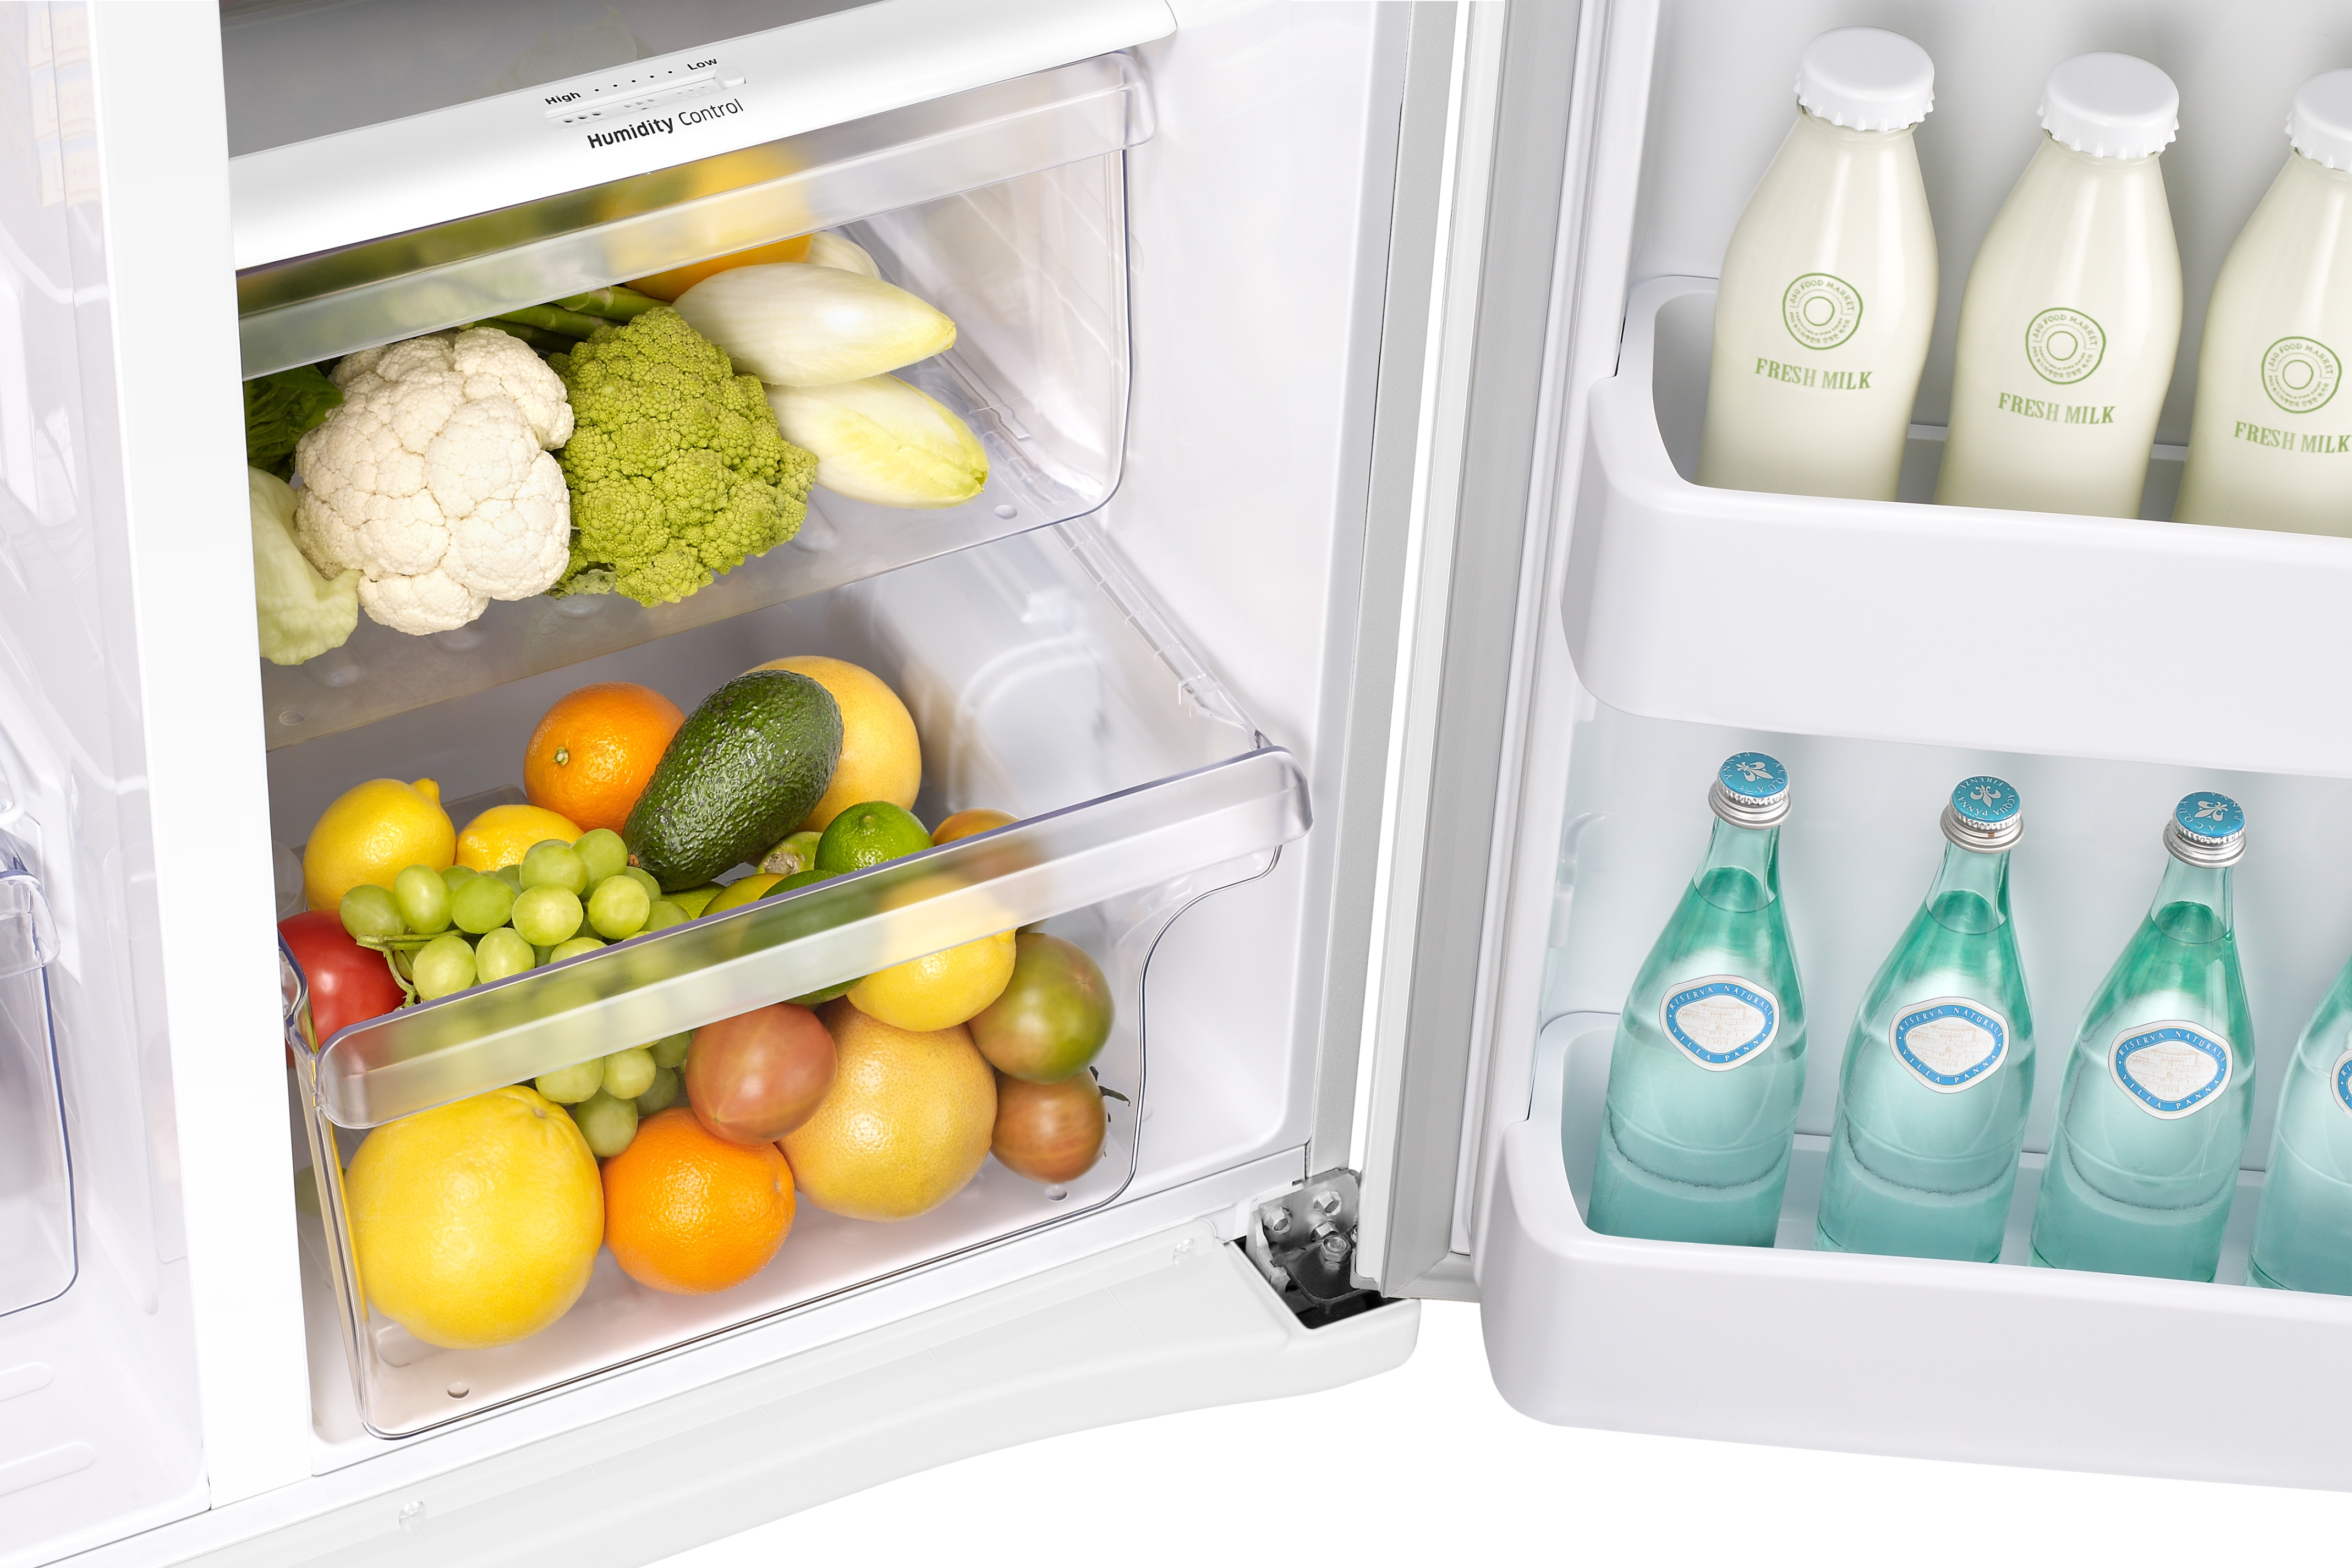 Samsung RS25J500DWW 25 cu. ft. Capacity Side-By-Side Refrigerator with LED Lighting White